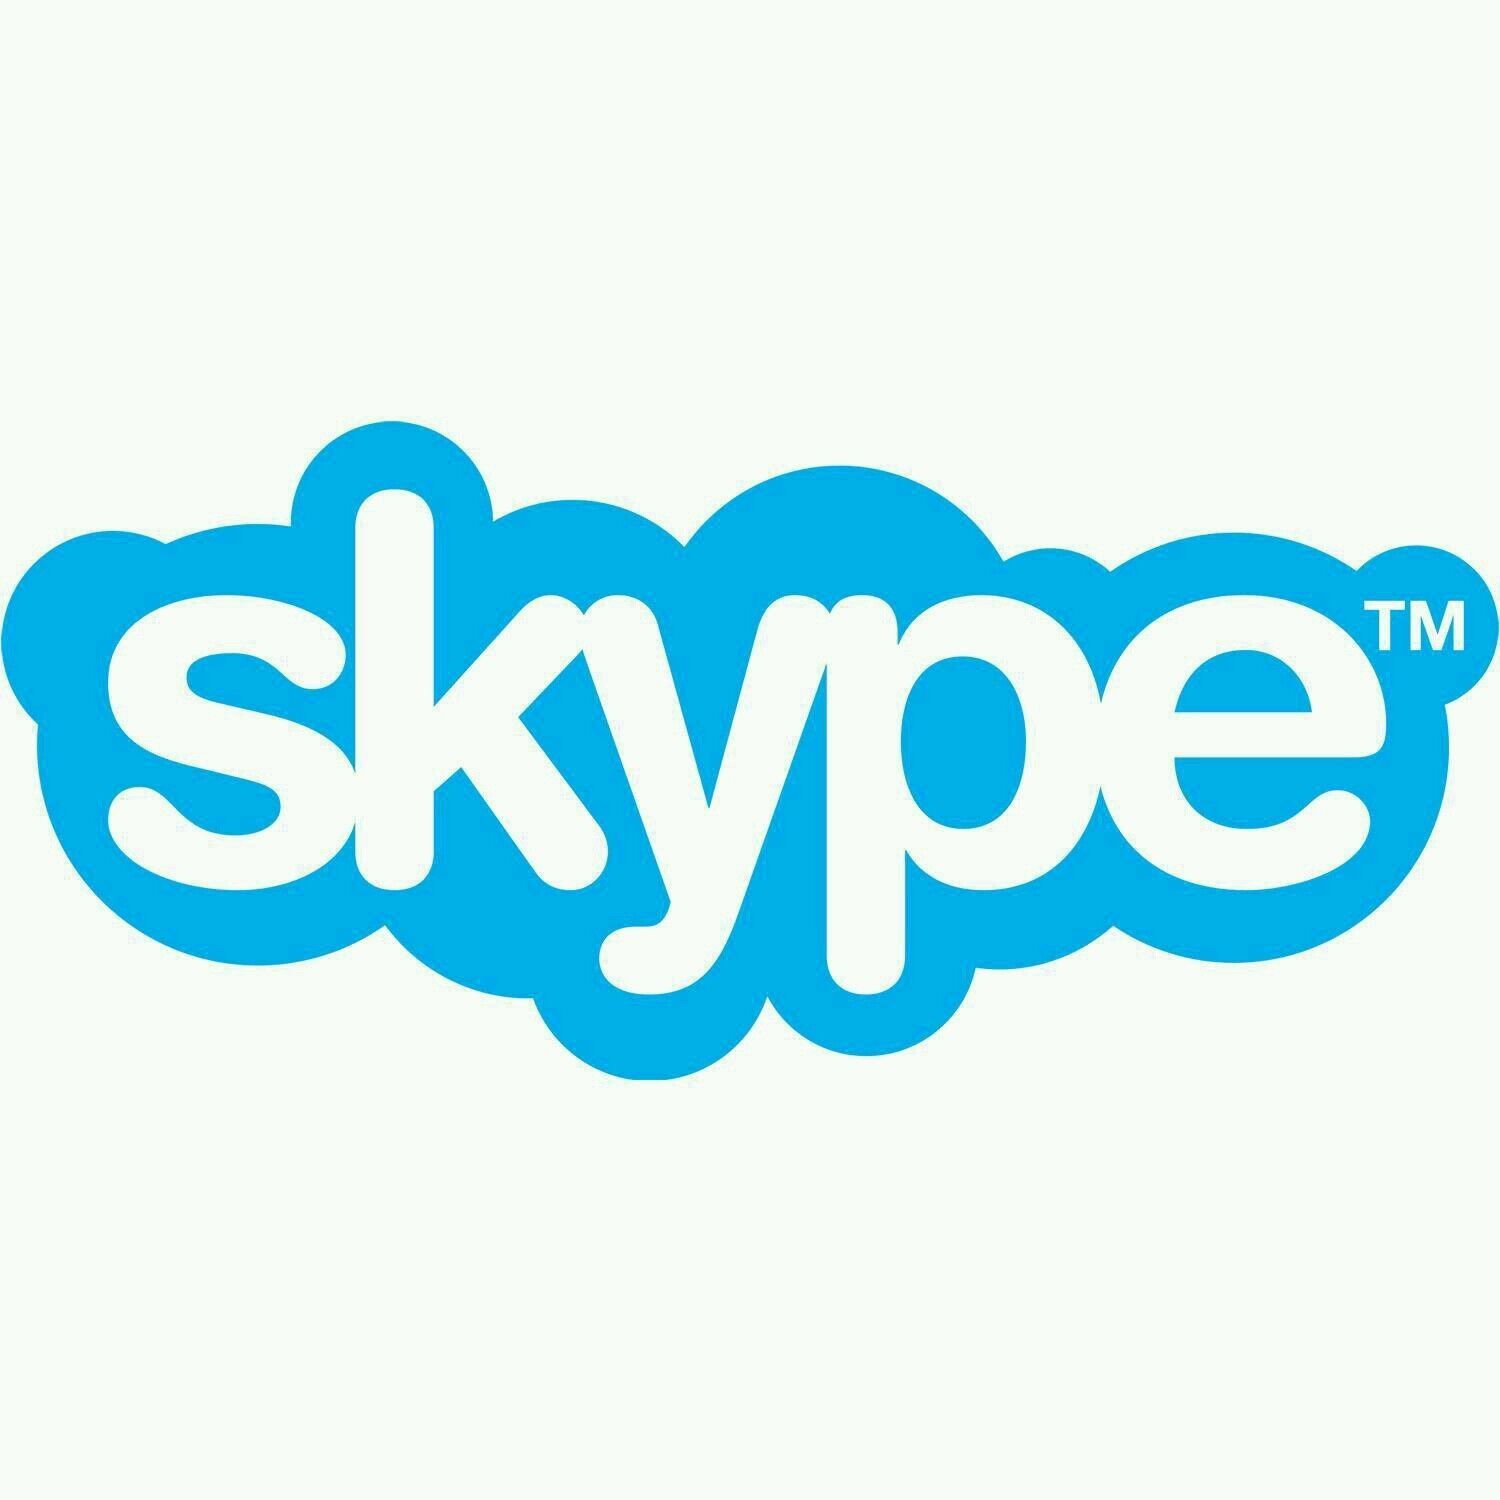 Skype Up To 1000 Minutes 27.69 Credit Voucher Instant Delivery  - $18.95